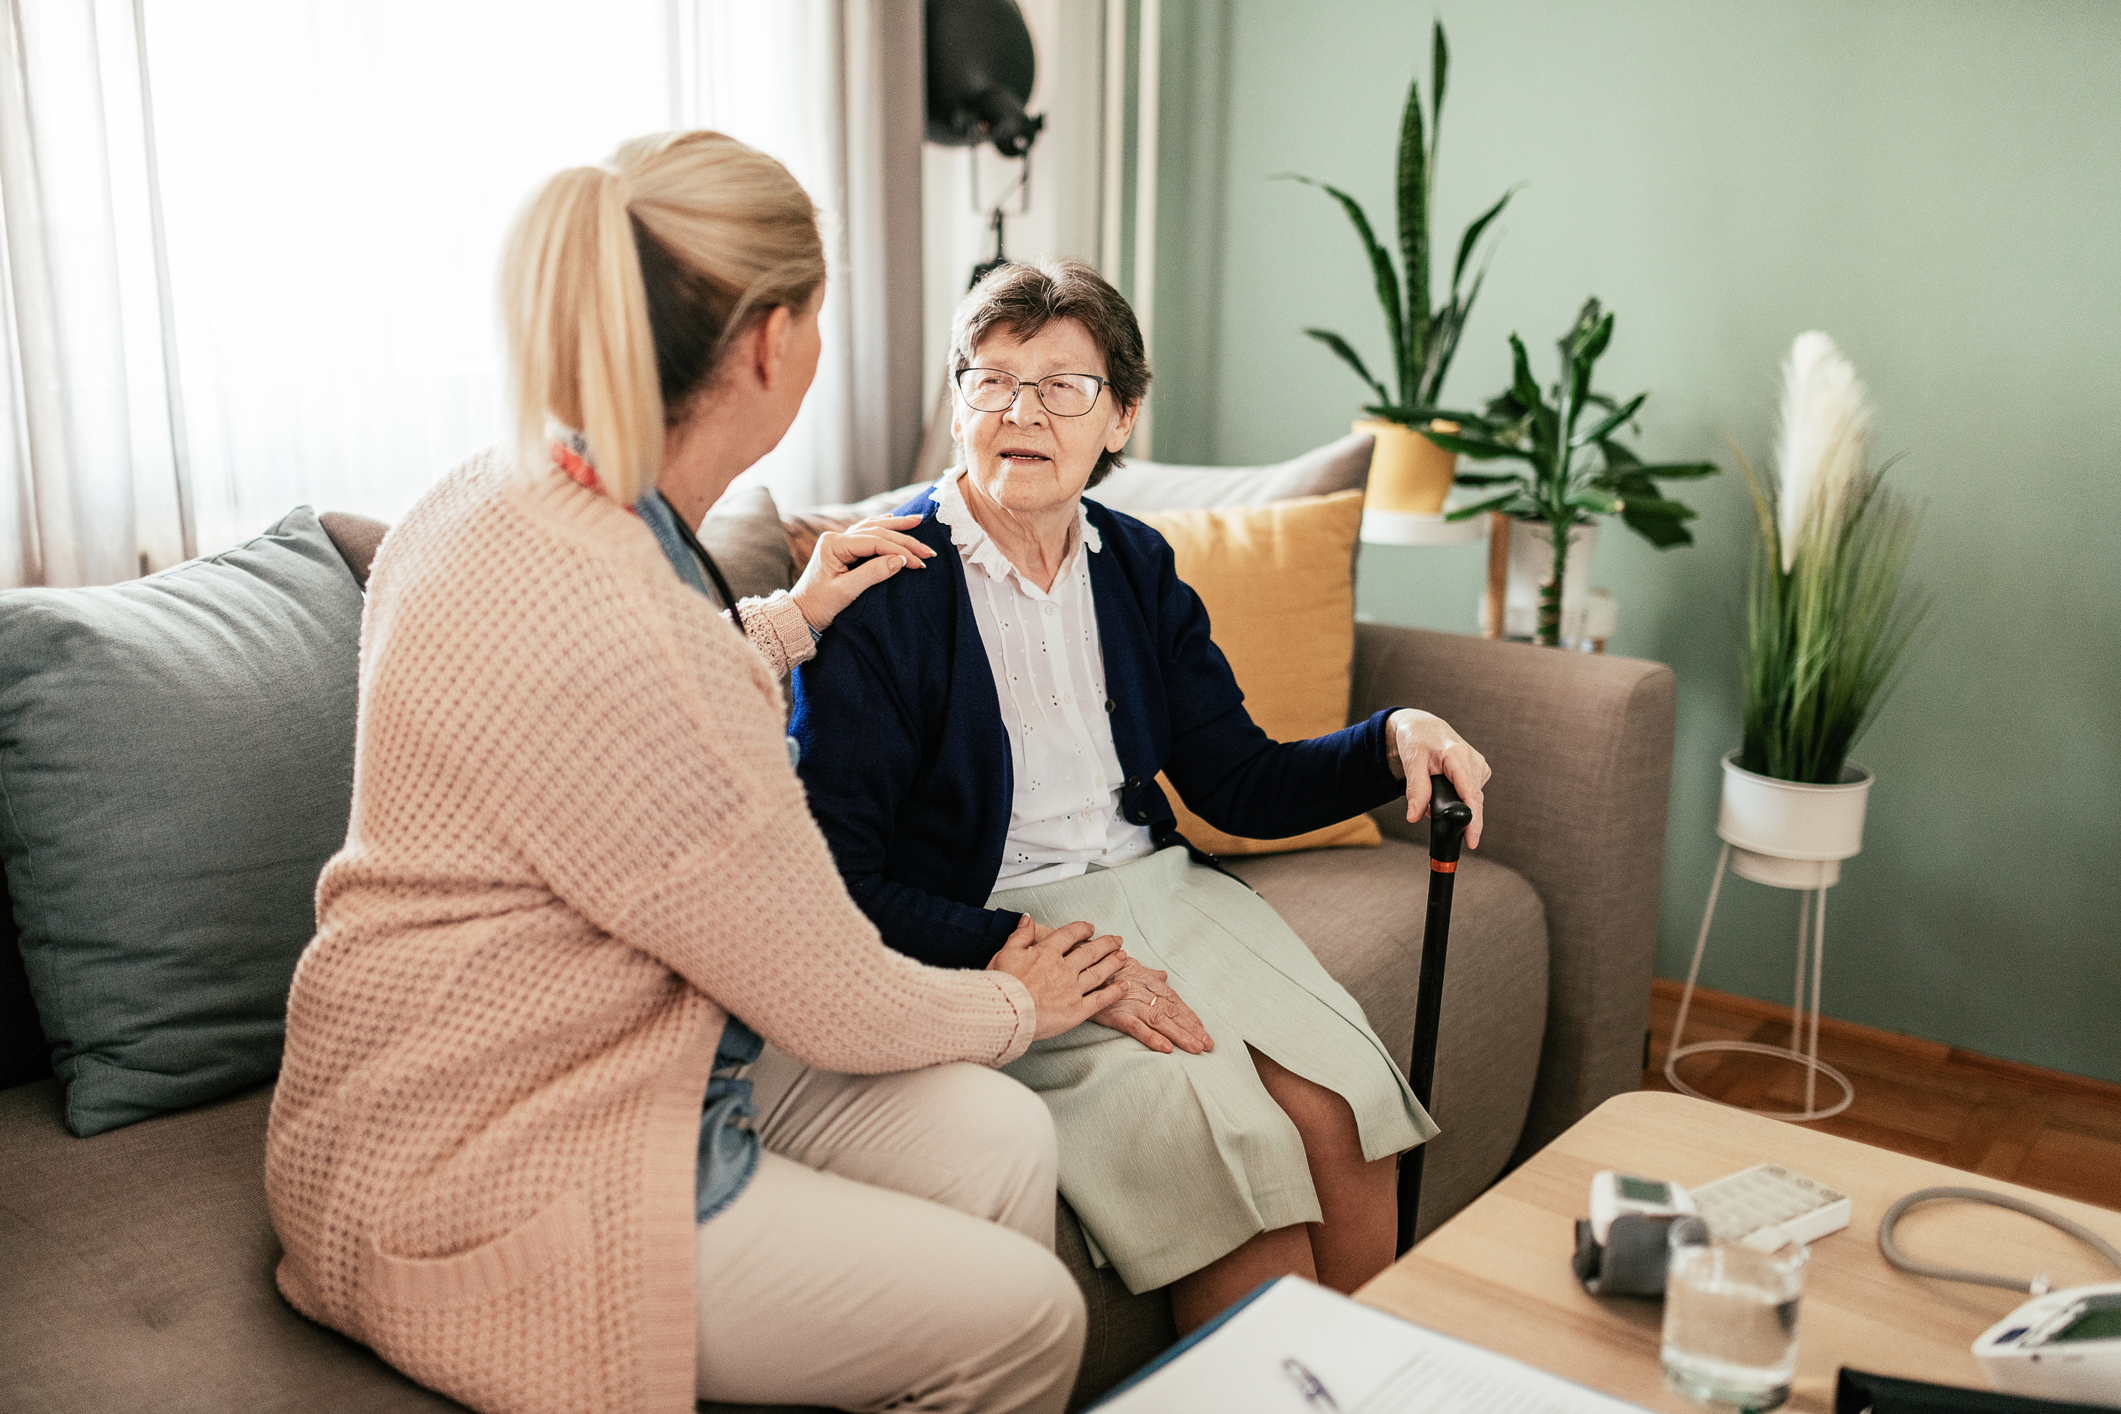 For seniors coping with long-term illness, home care can help.